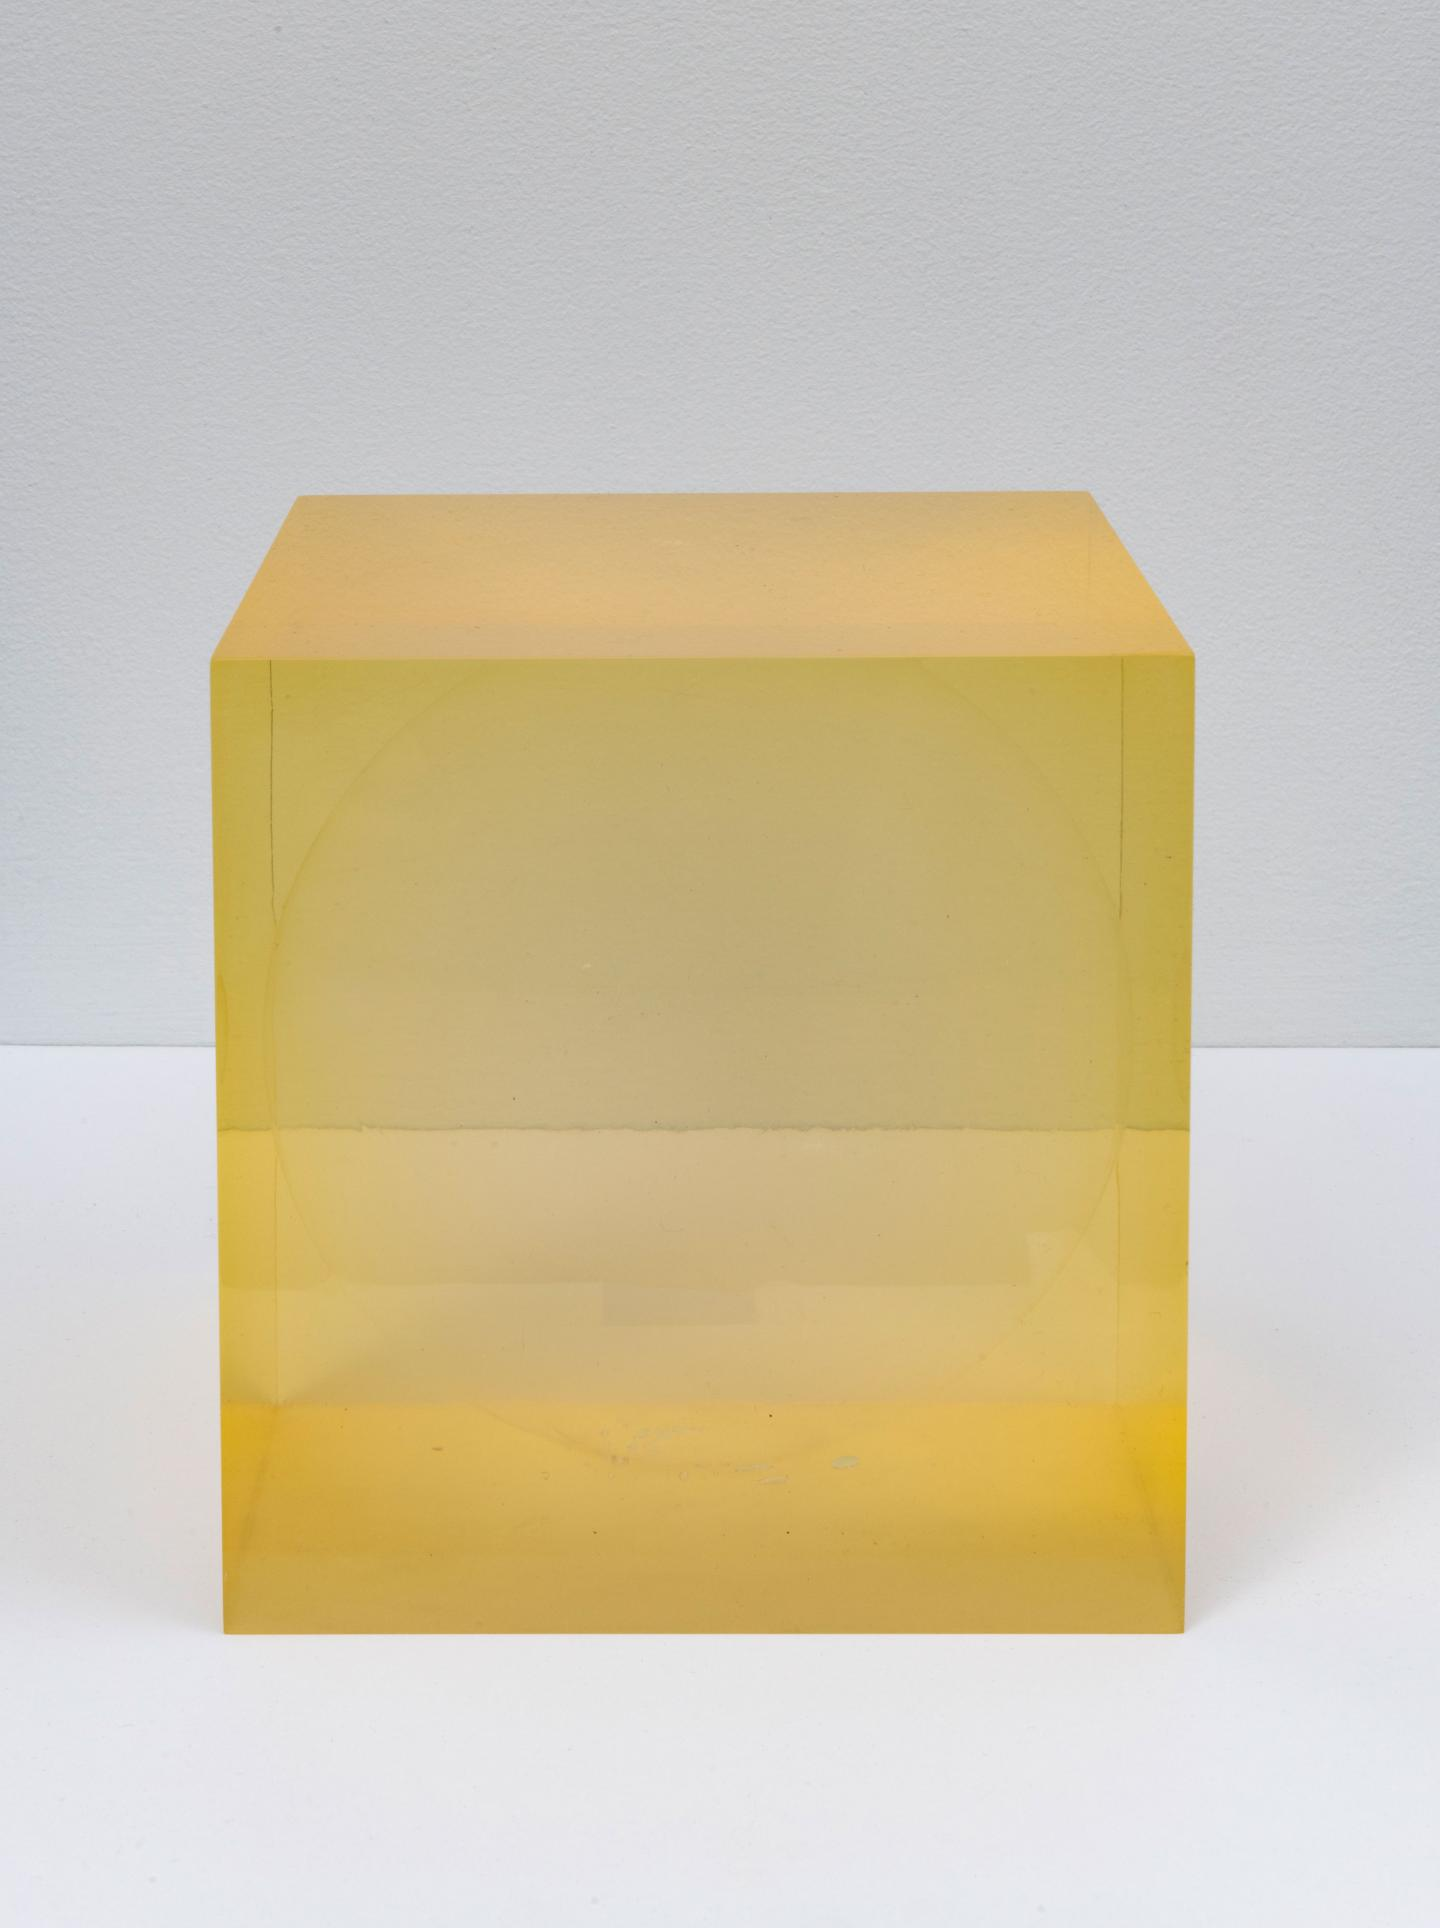 Peter Alexander, Untitled (Sphere within Cube), 1965